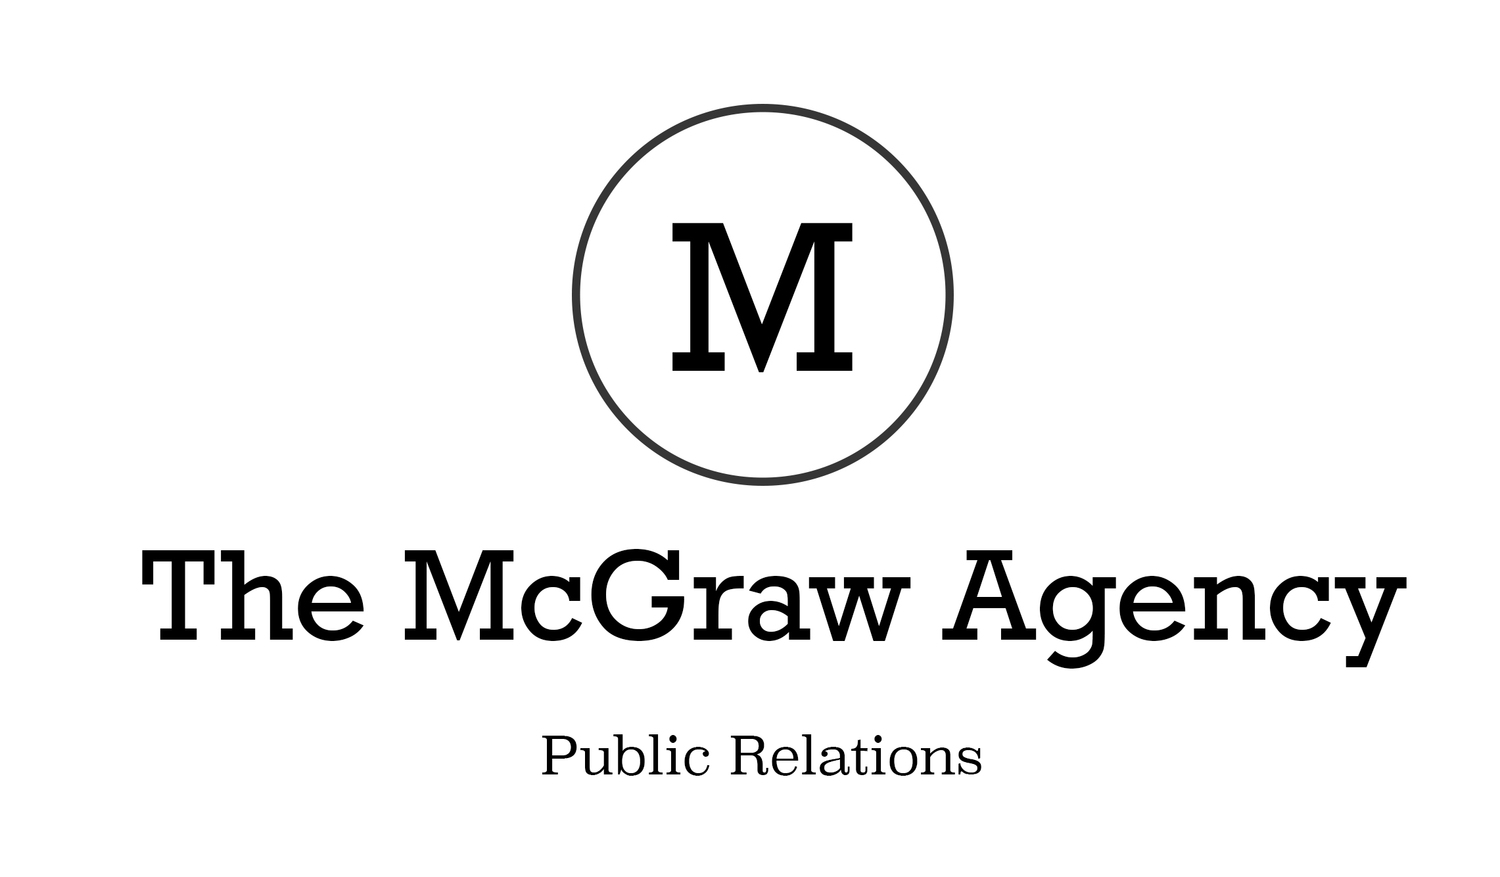 The McGraw Agency